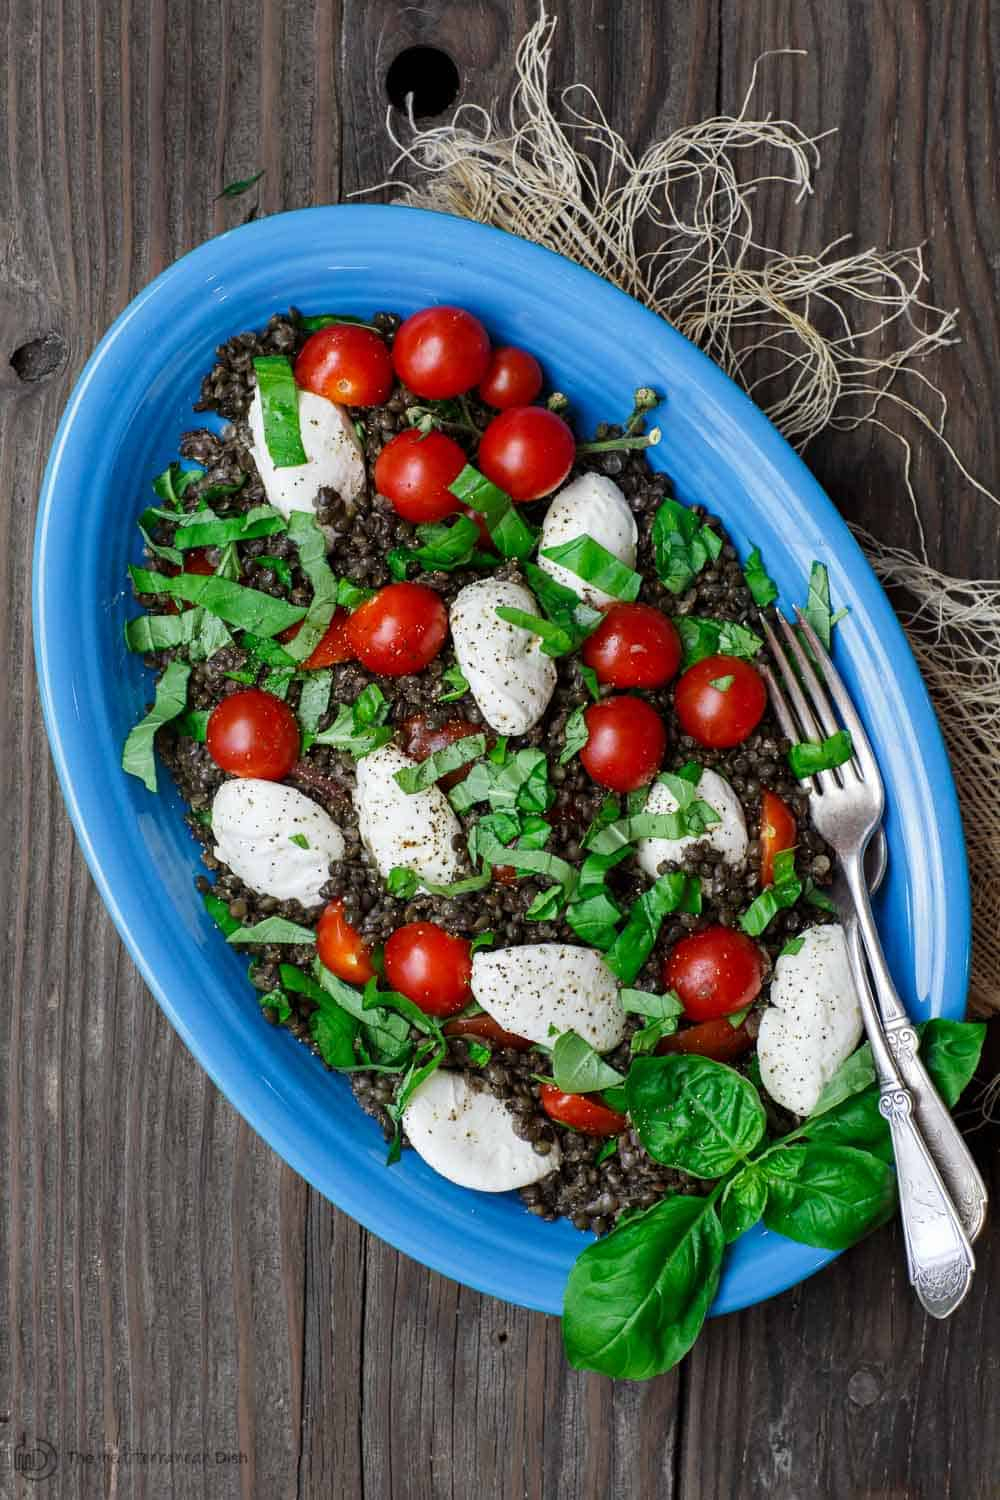 Salad with lentils, tomatoes and mozzarella cheese ready to be served